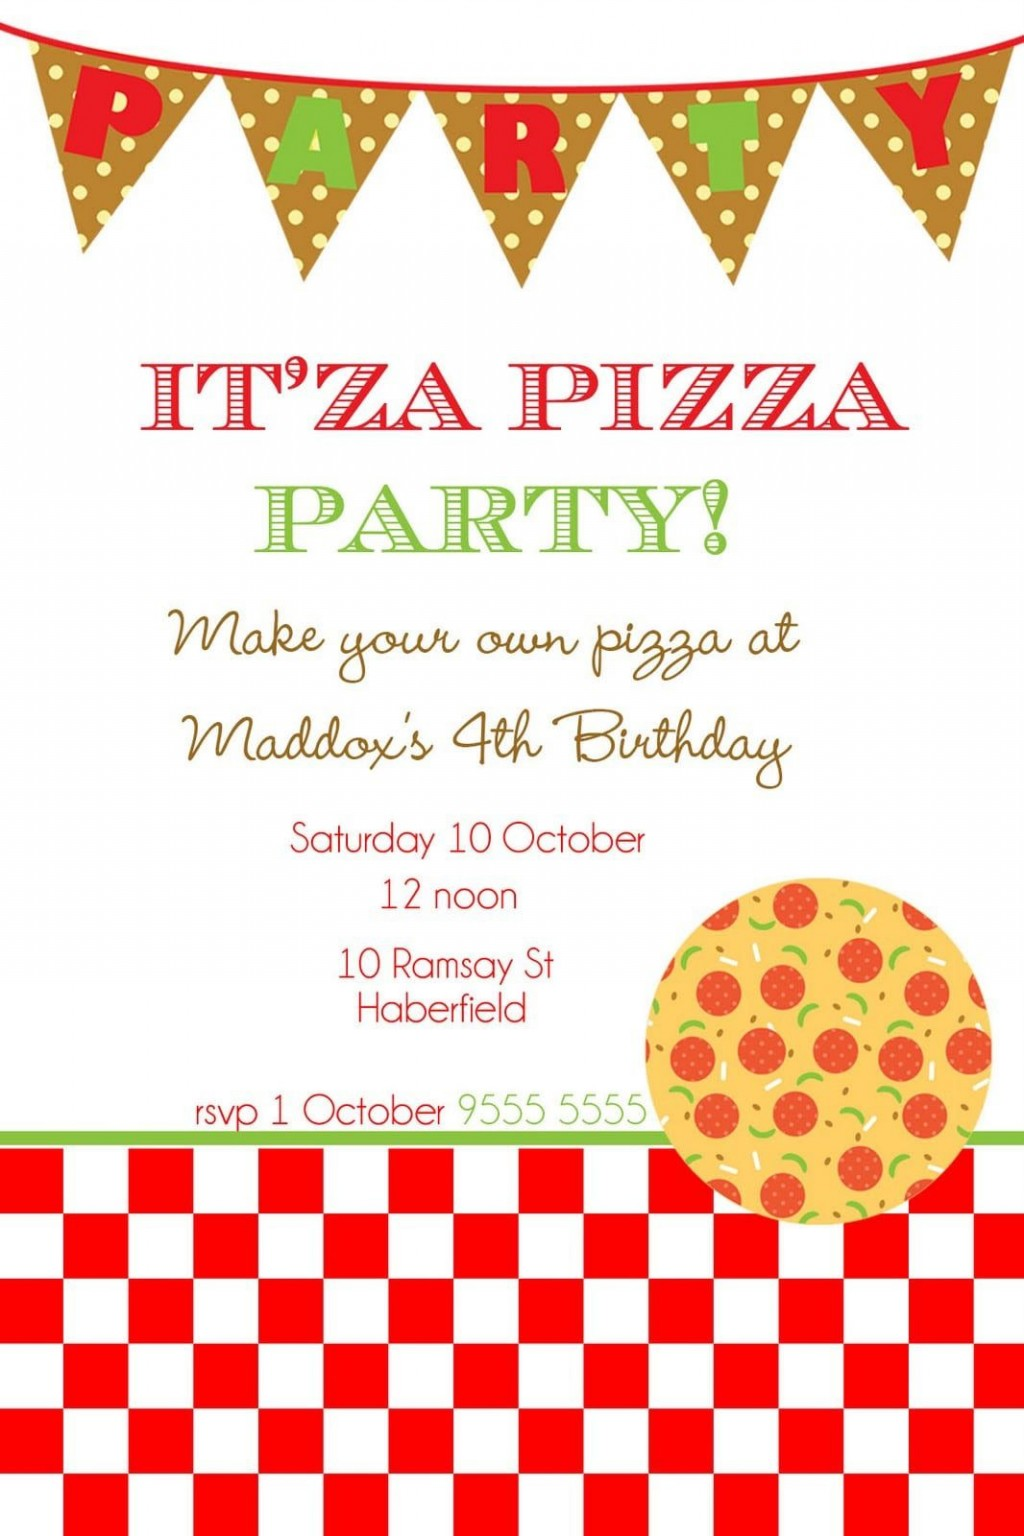 006 Awesome Pizza Party Invitation Template Free High Resolution  PrintableLarge